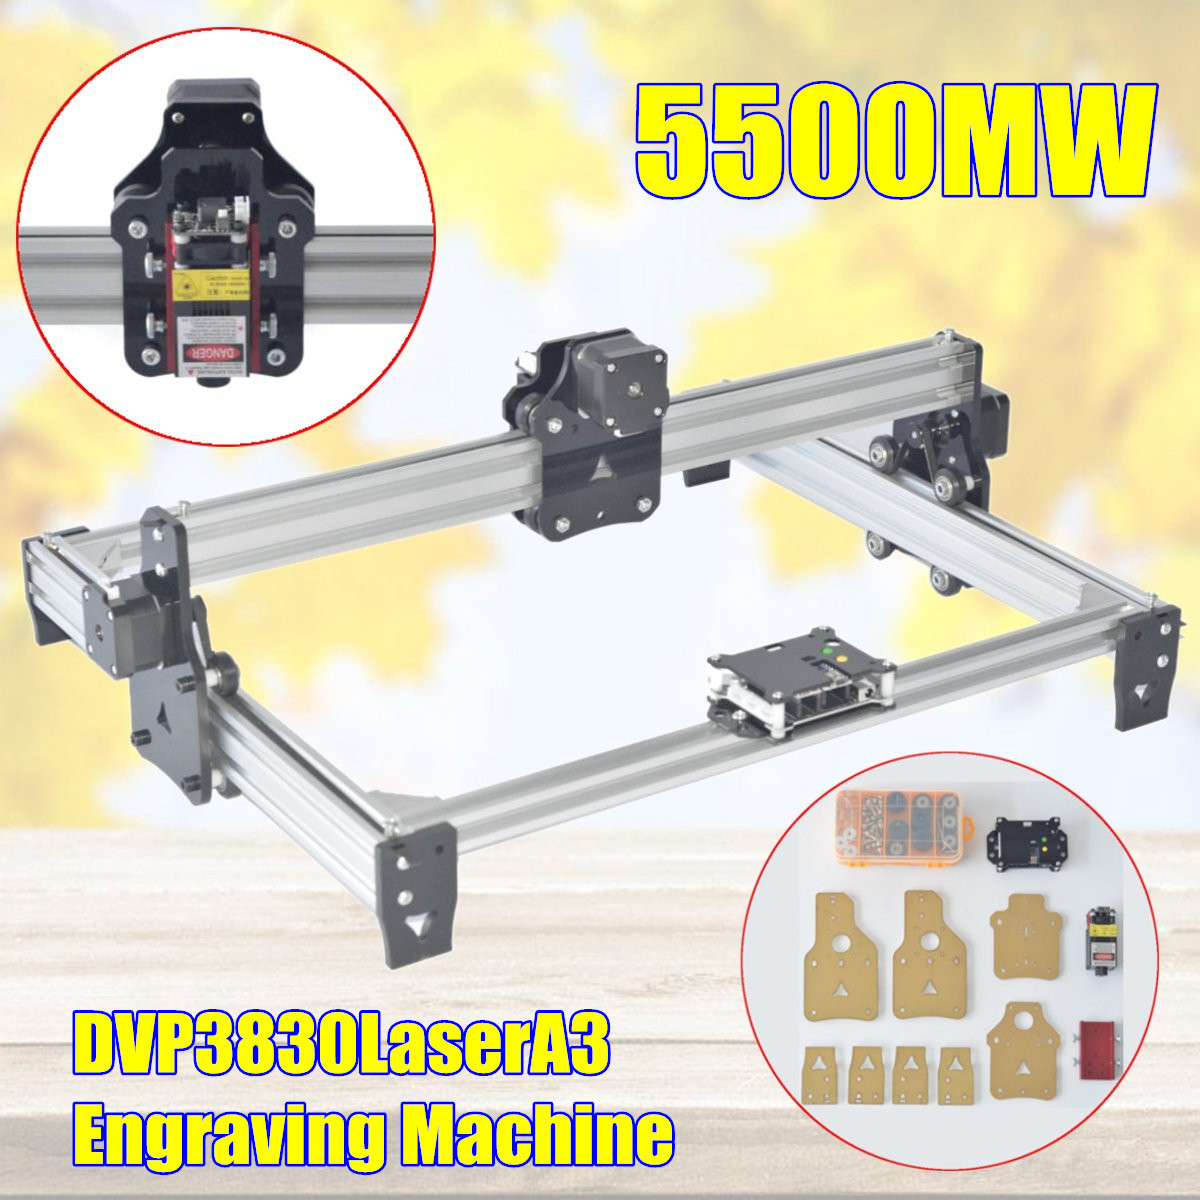 5500mw DVP 3830 Laser A3 Engraving Machine,DIY Laser Engraver Machine,Wood Router,laser cutter,cnc router,Woodworking Machinery матрас diamond rush solid cocos 9 dr 140x190x9 см page 8 page 2